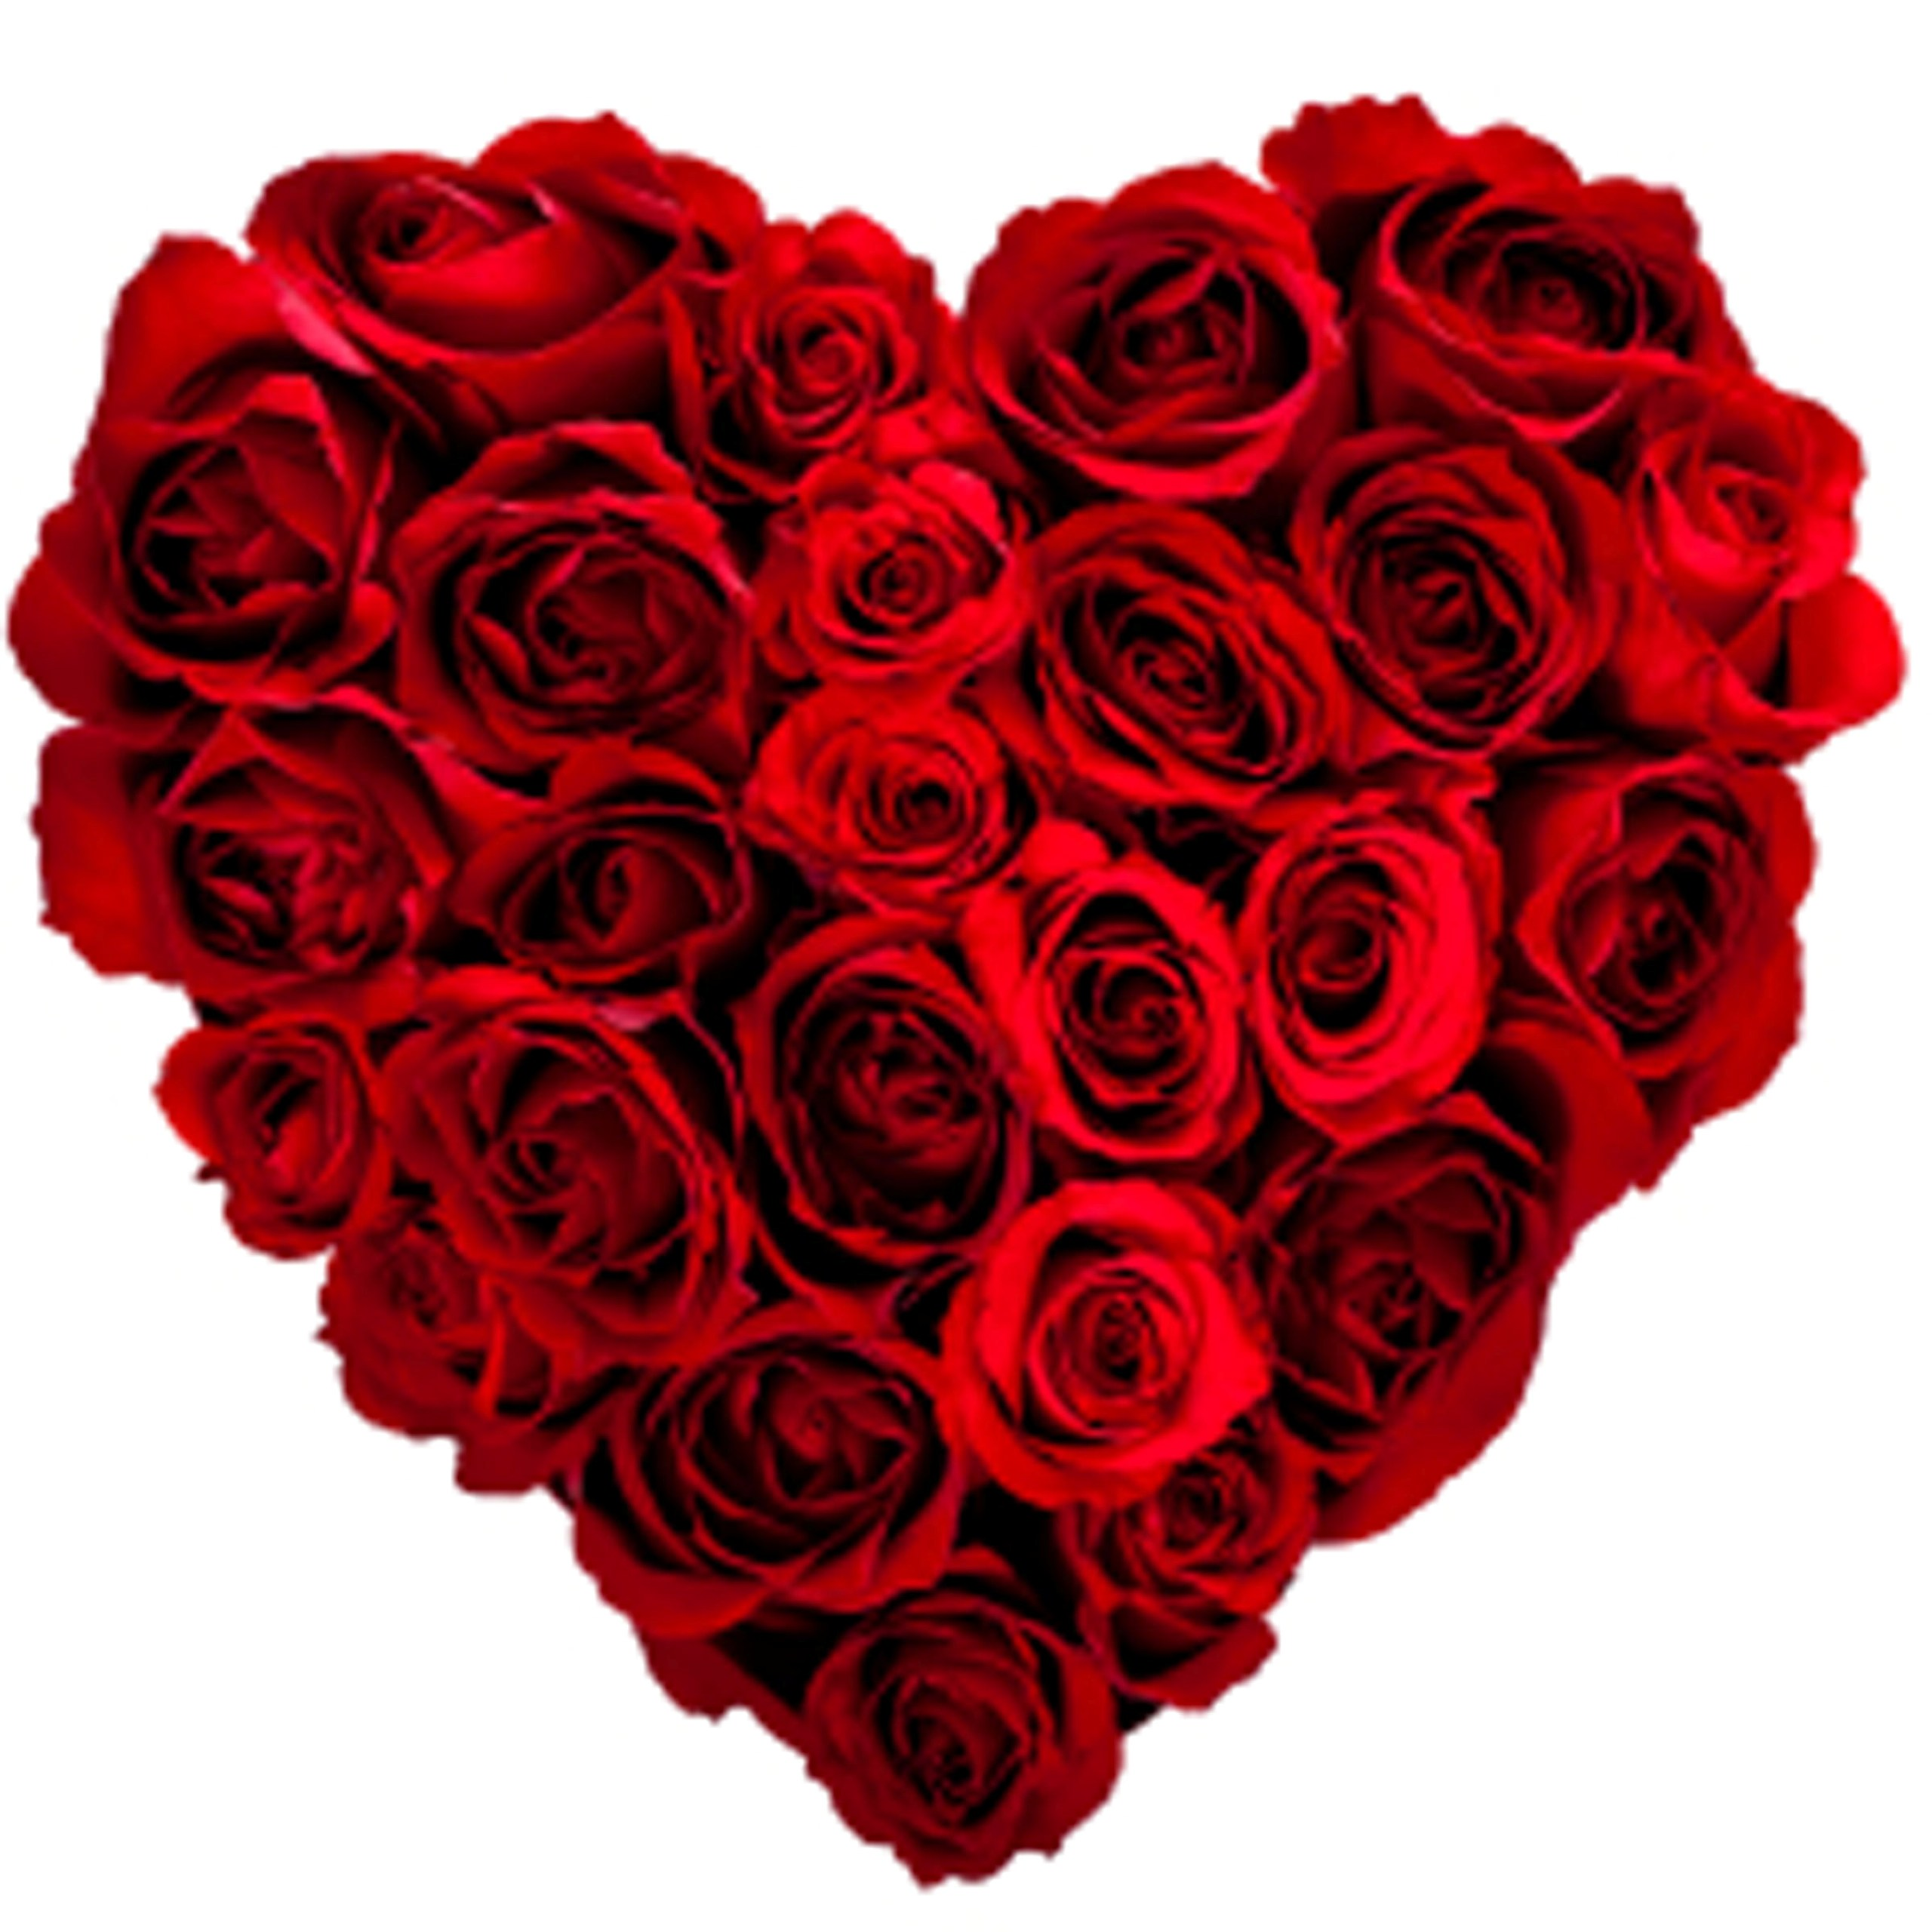 Red Roses Wallpapers HD A39 heart shape